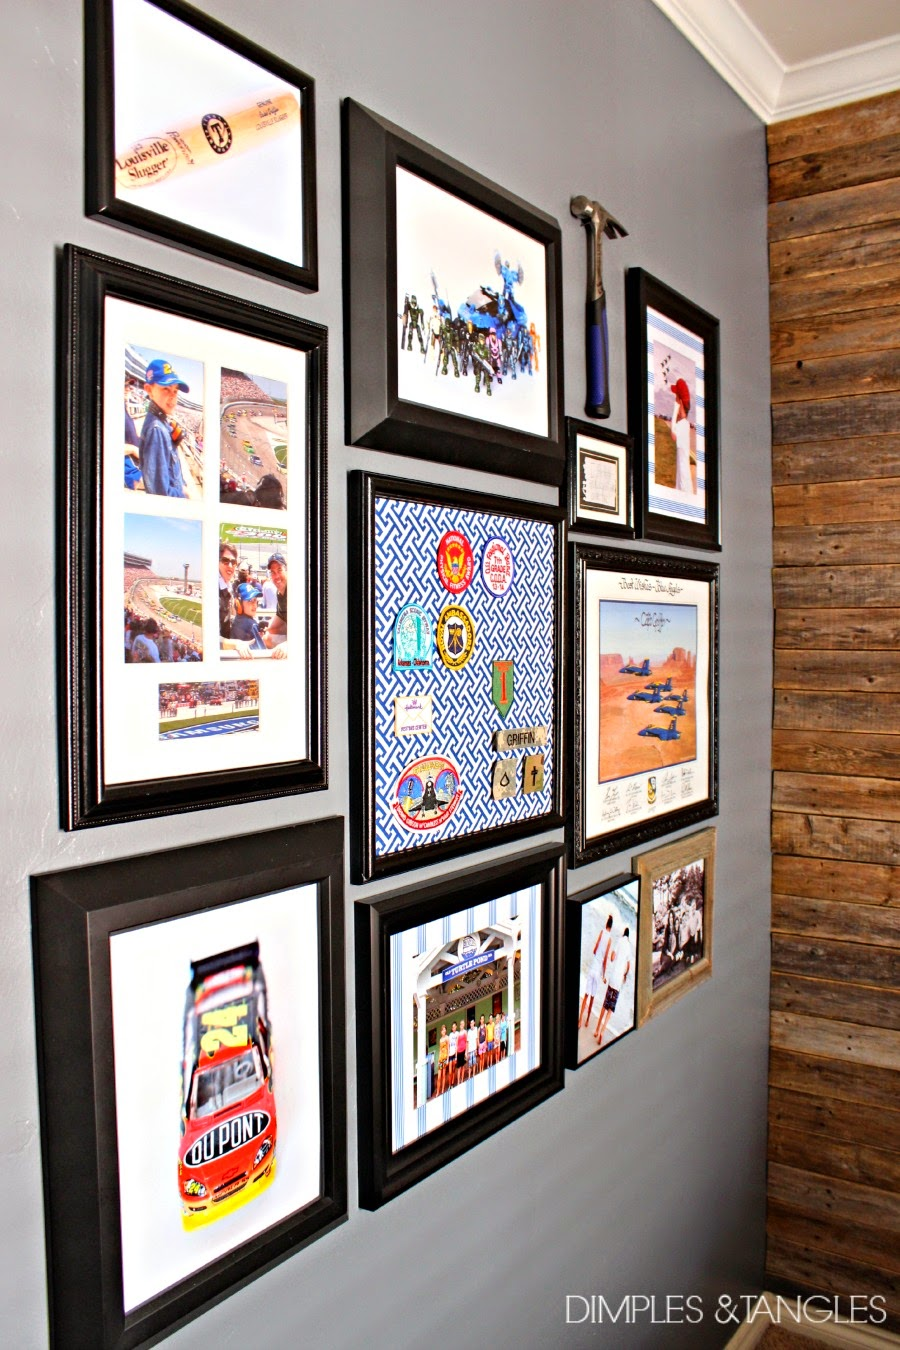 BOY\'S GALLERY WALL AND SOUVENIR PATCH ARTWORK - Dimples and Tangles